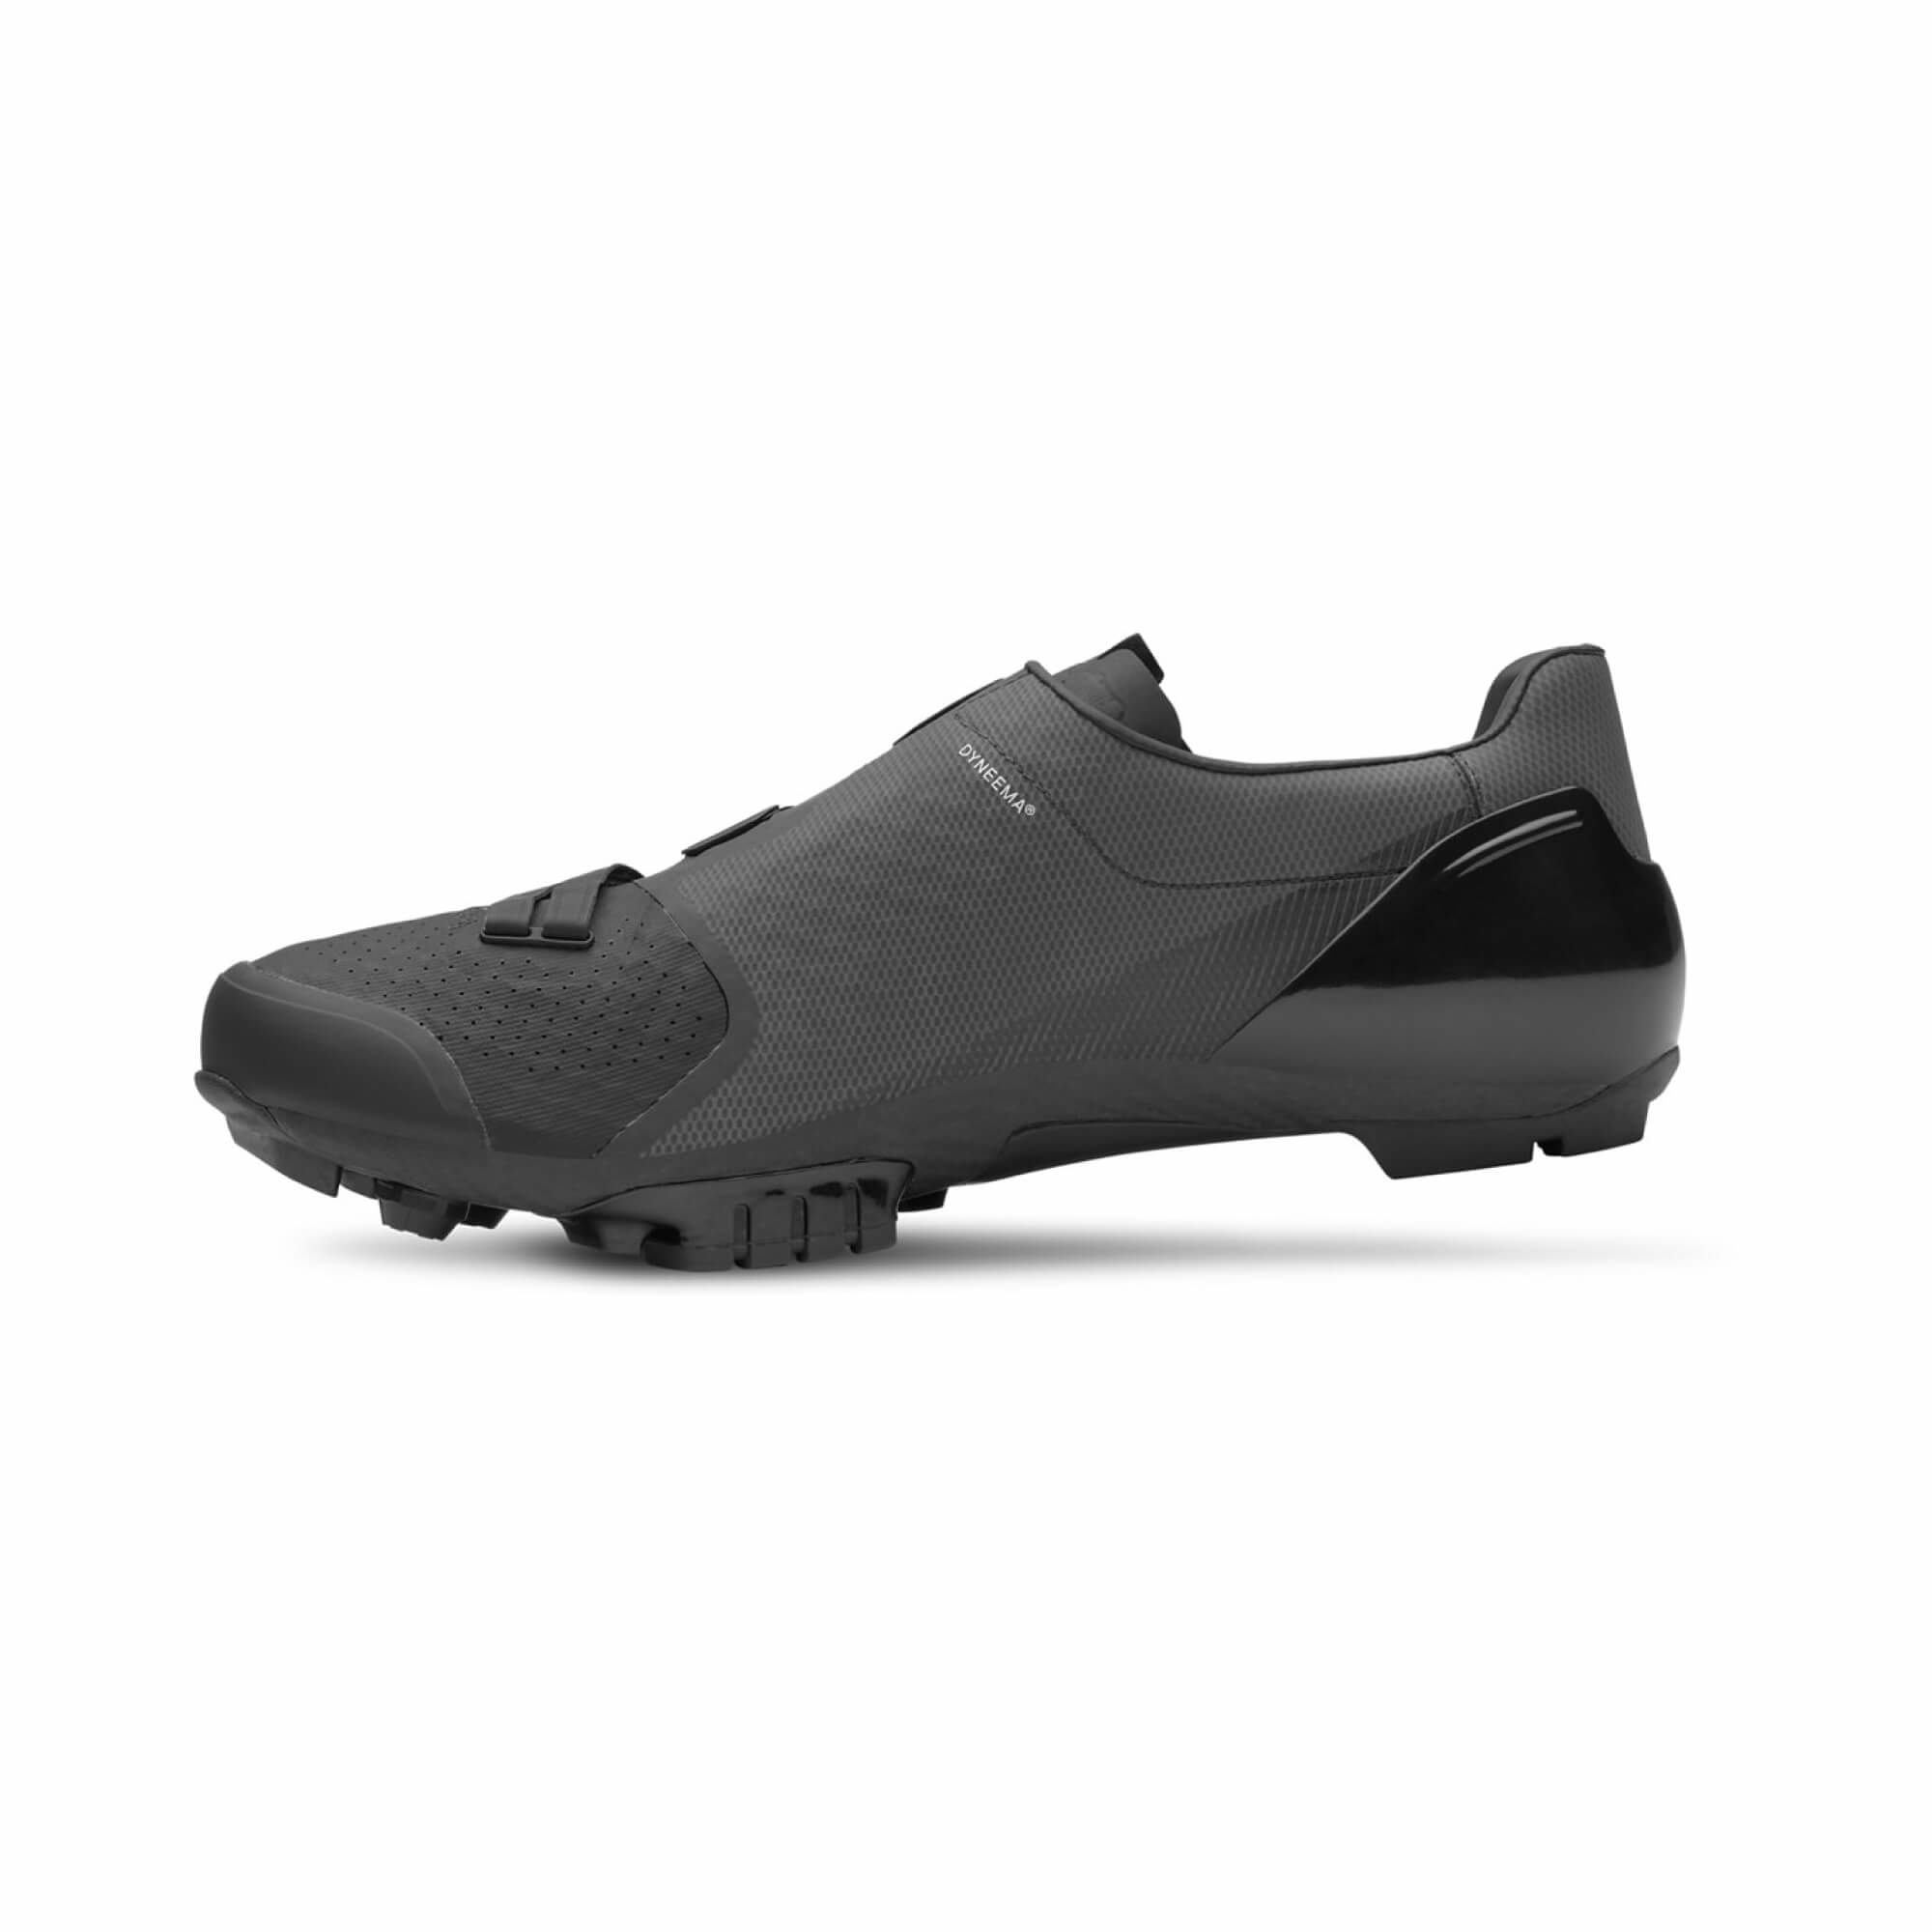 S-Works Recon Shoe-3